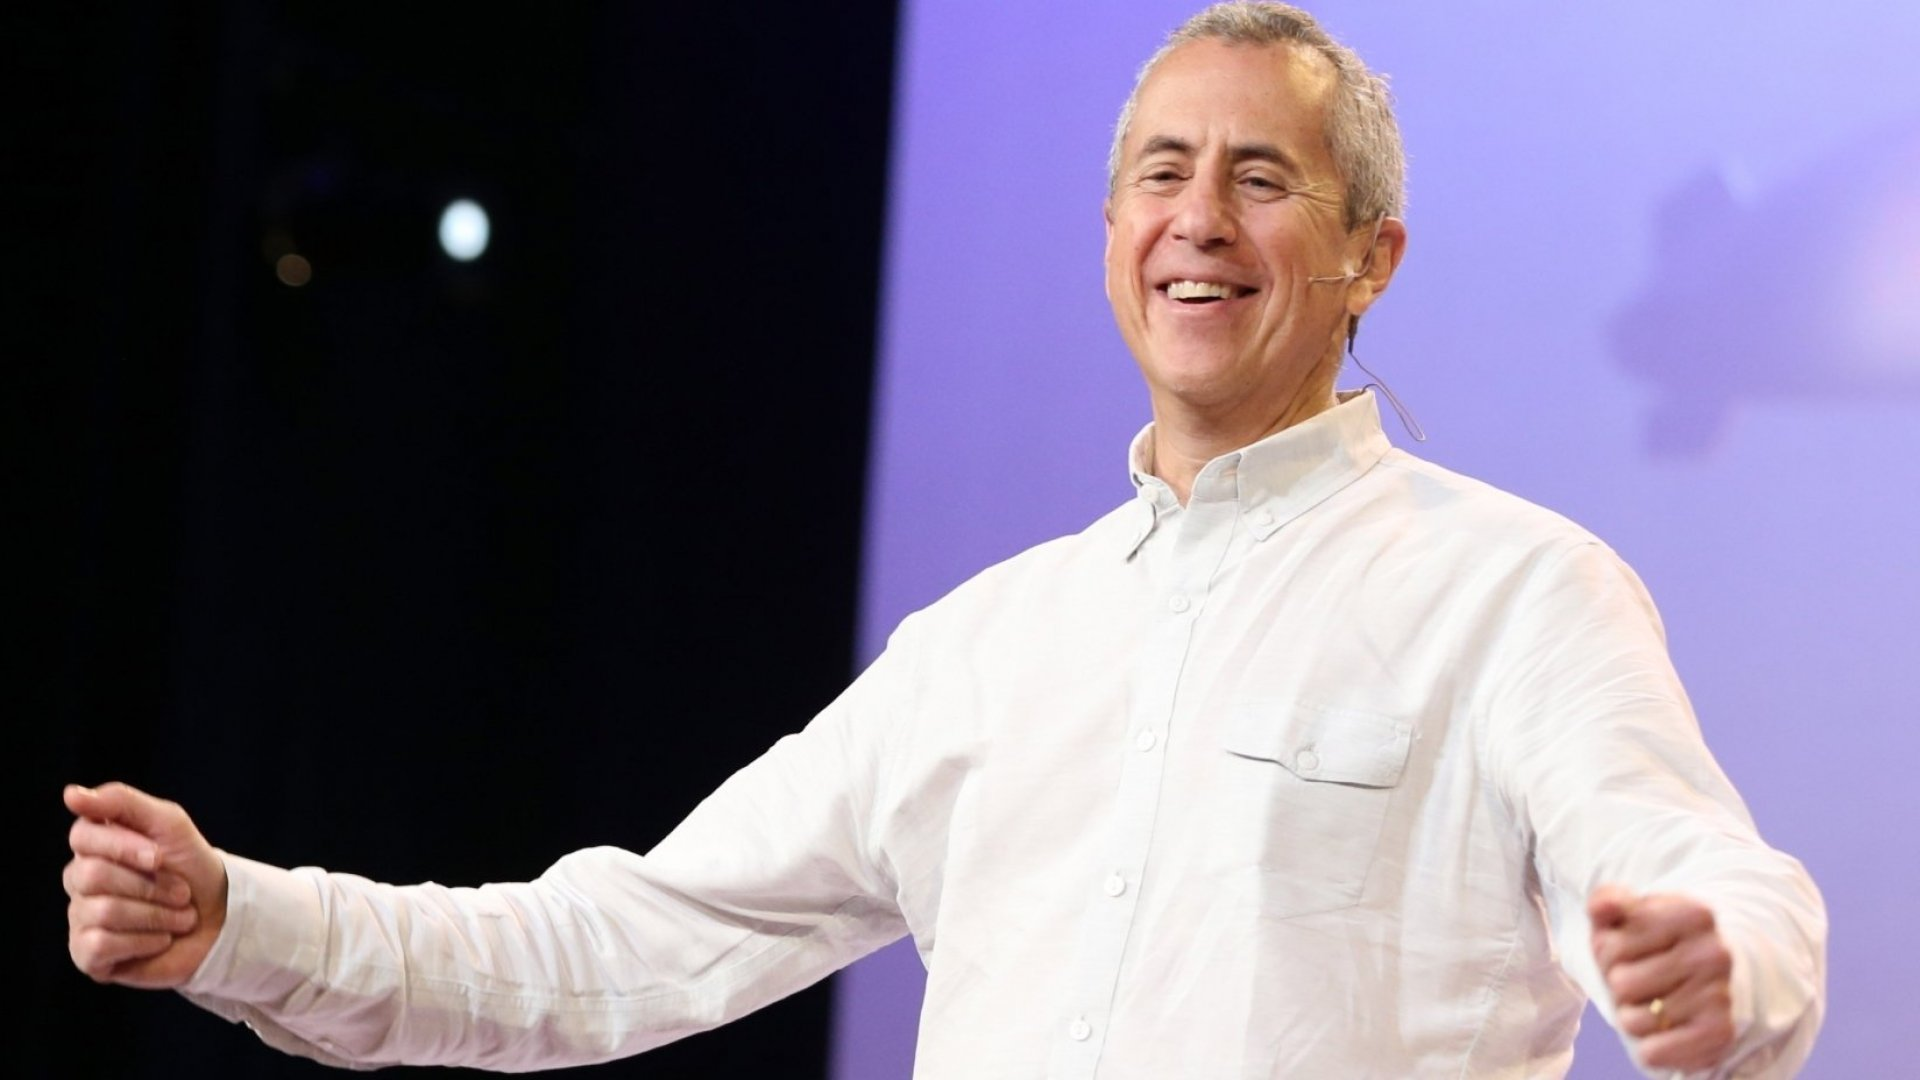 The 1 Quality Shake Shack Founder Danny Meyer Looks For in New Hires